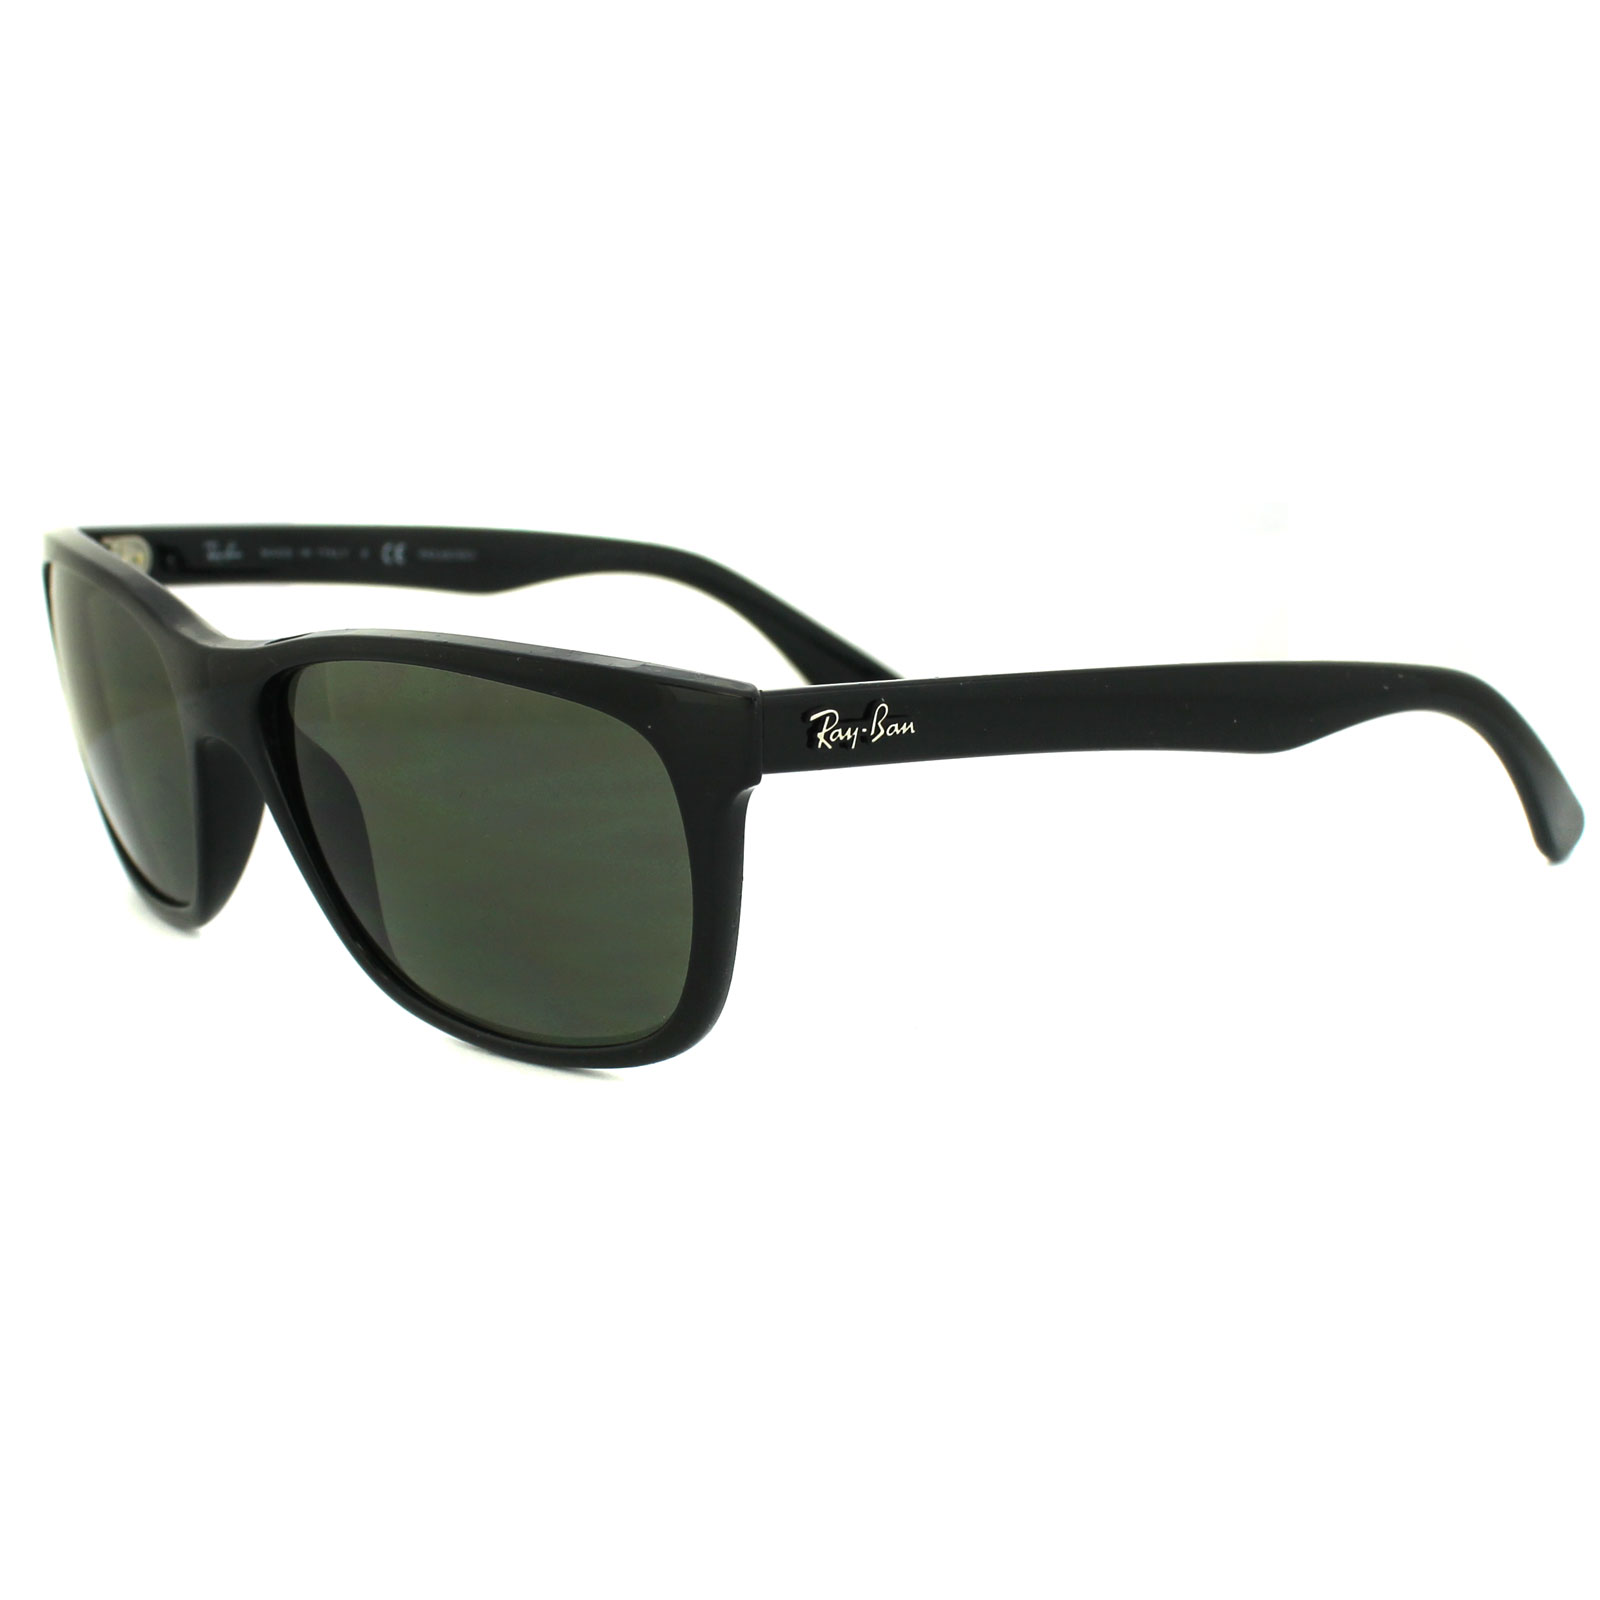 a498bad6be828 Ray Ban Sunglasses 4181 Polarized « Heritage Malta